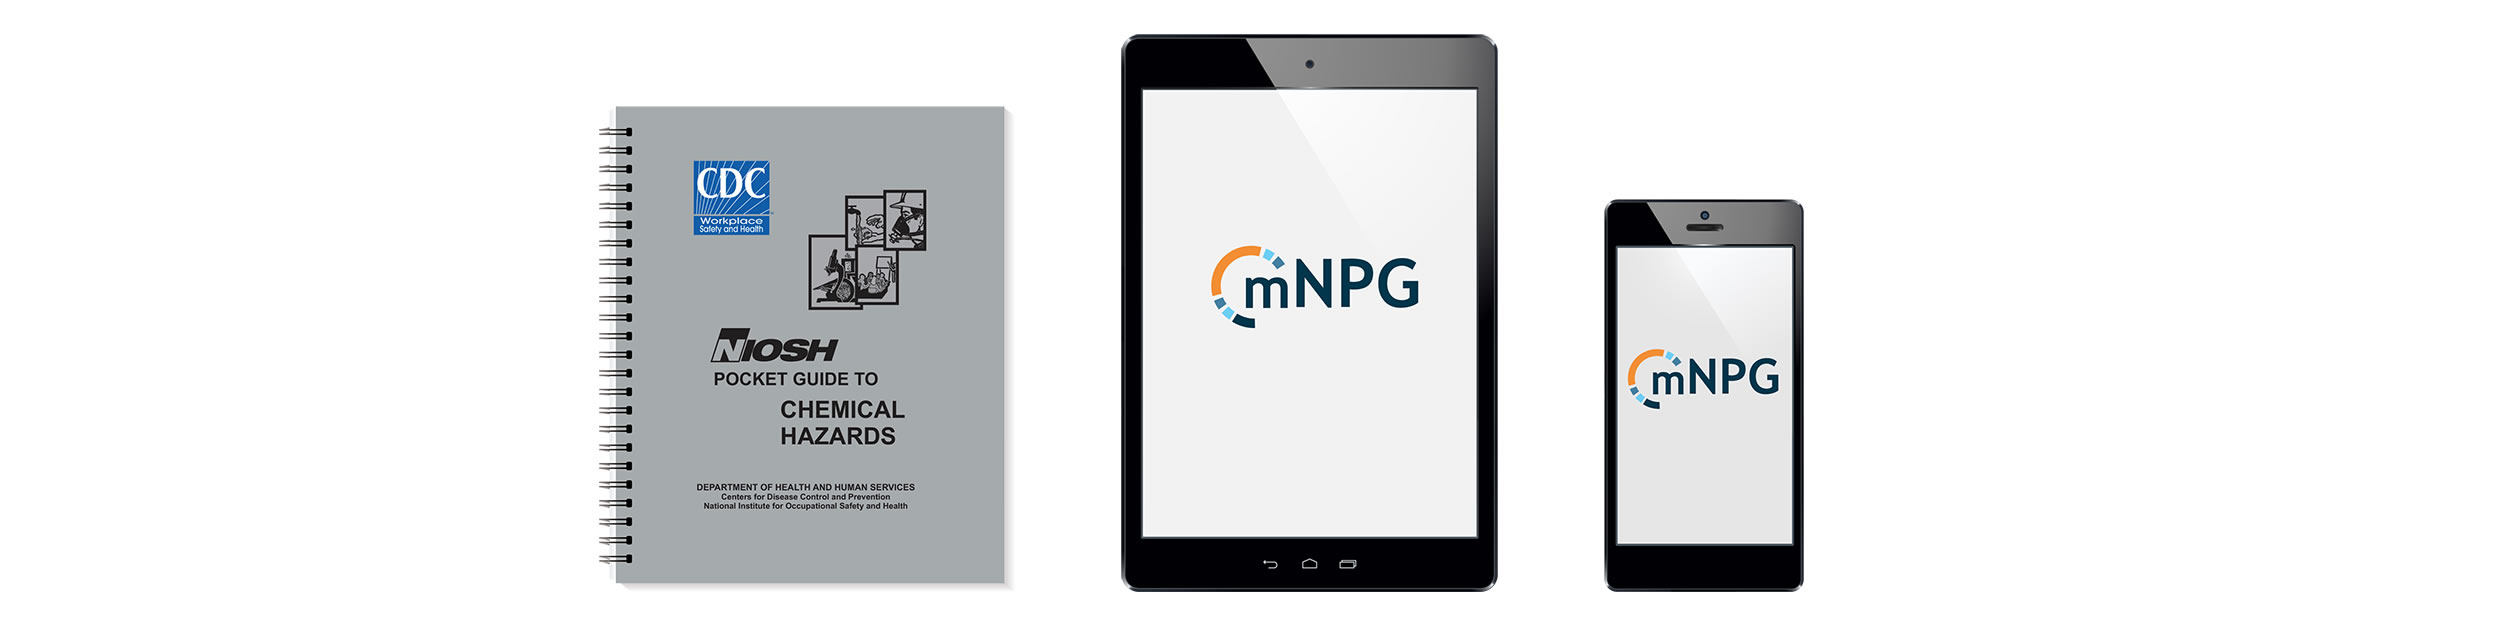 Pocket guide document, pocket guide app on tablet, and pocket guide app on mobile smart phone